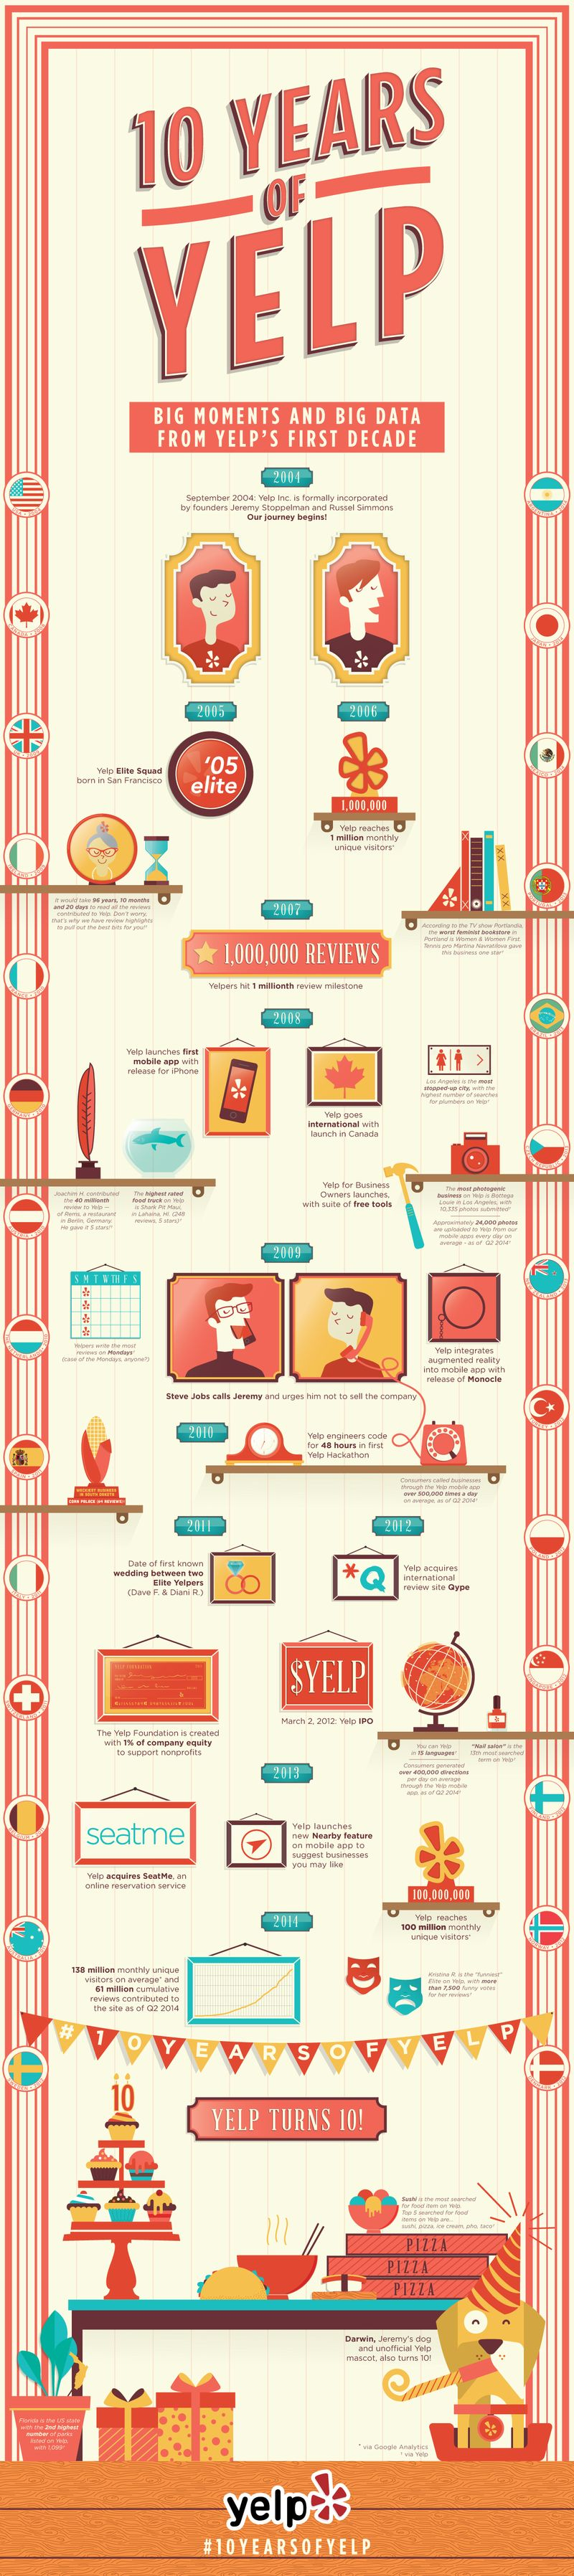 10 years of YELP infographic